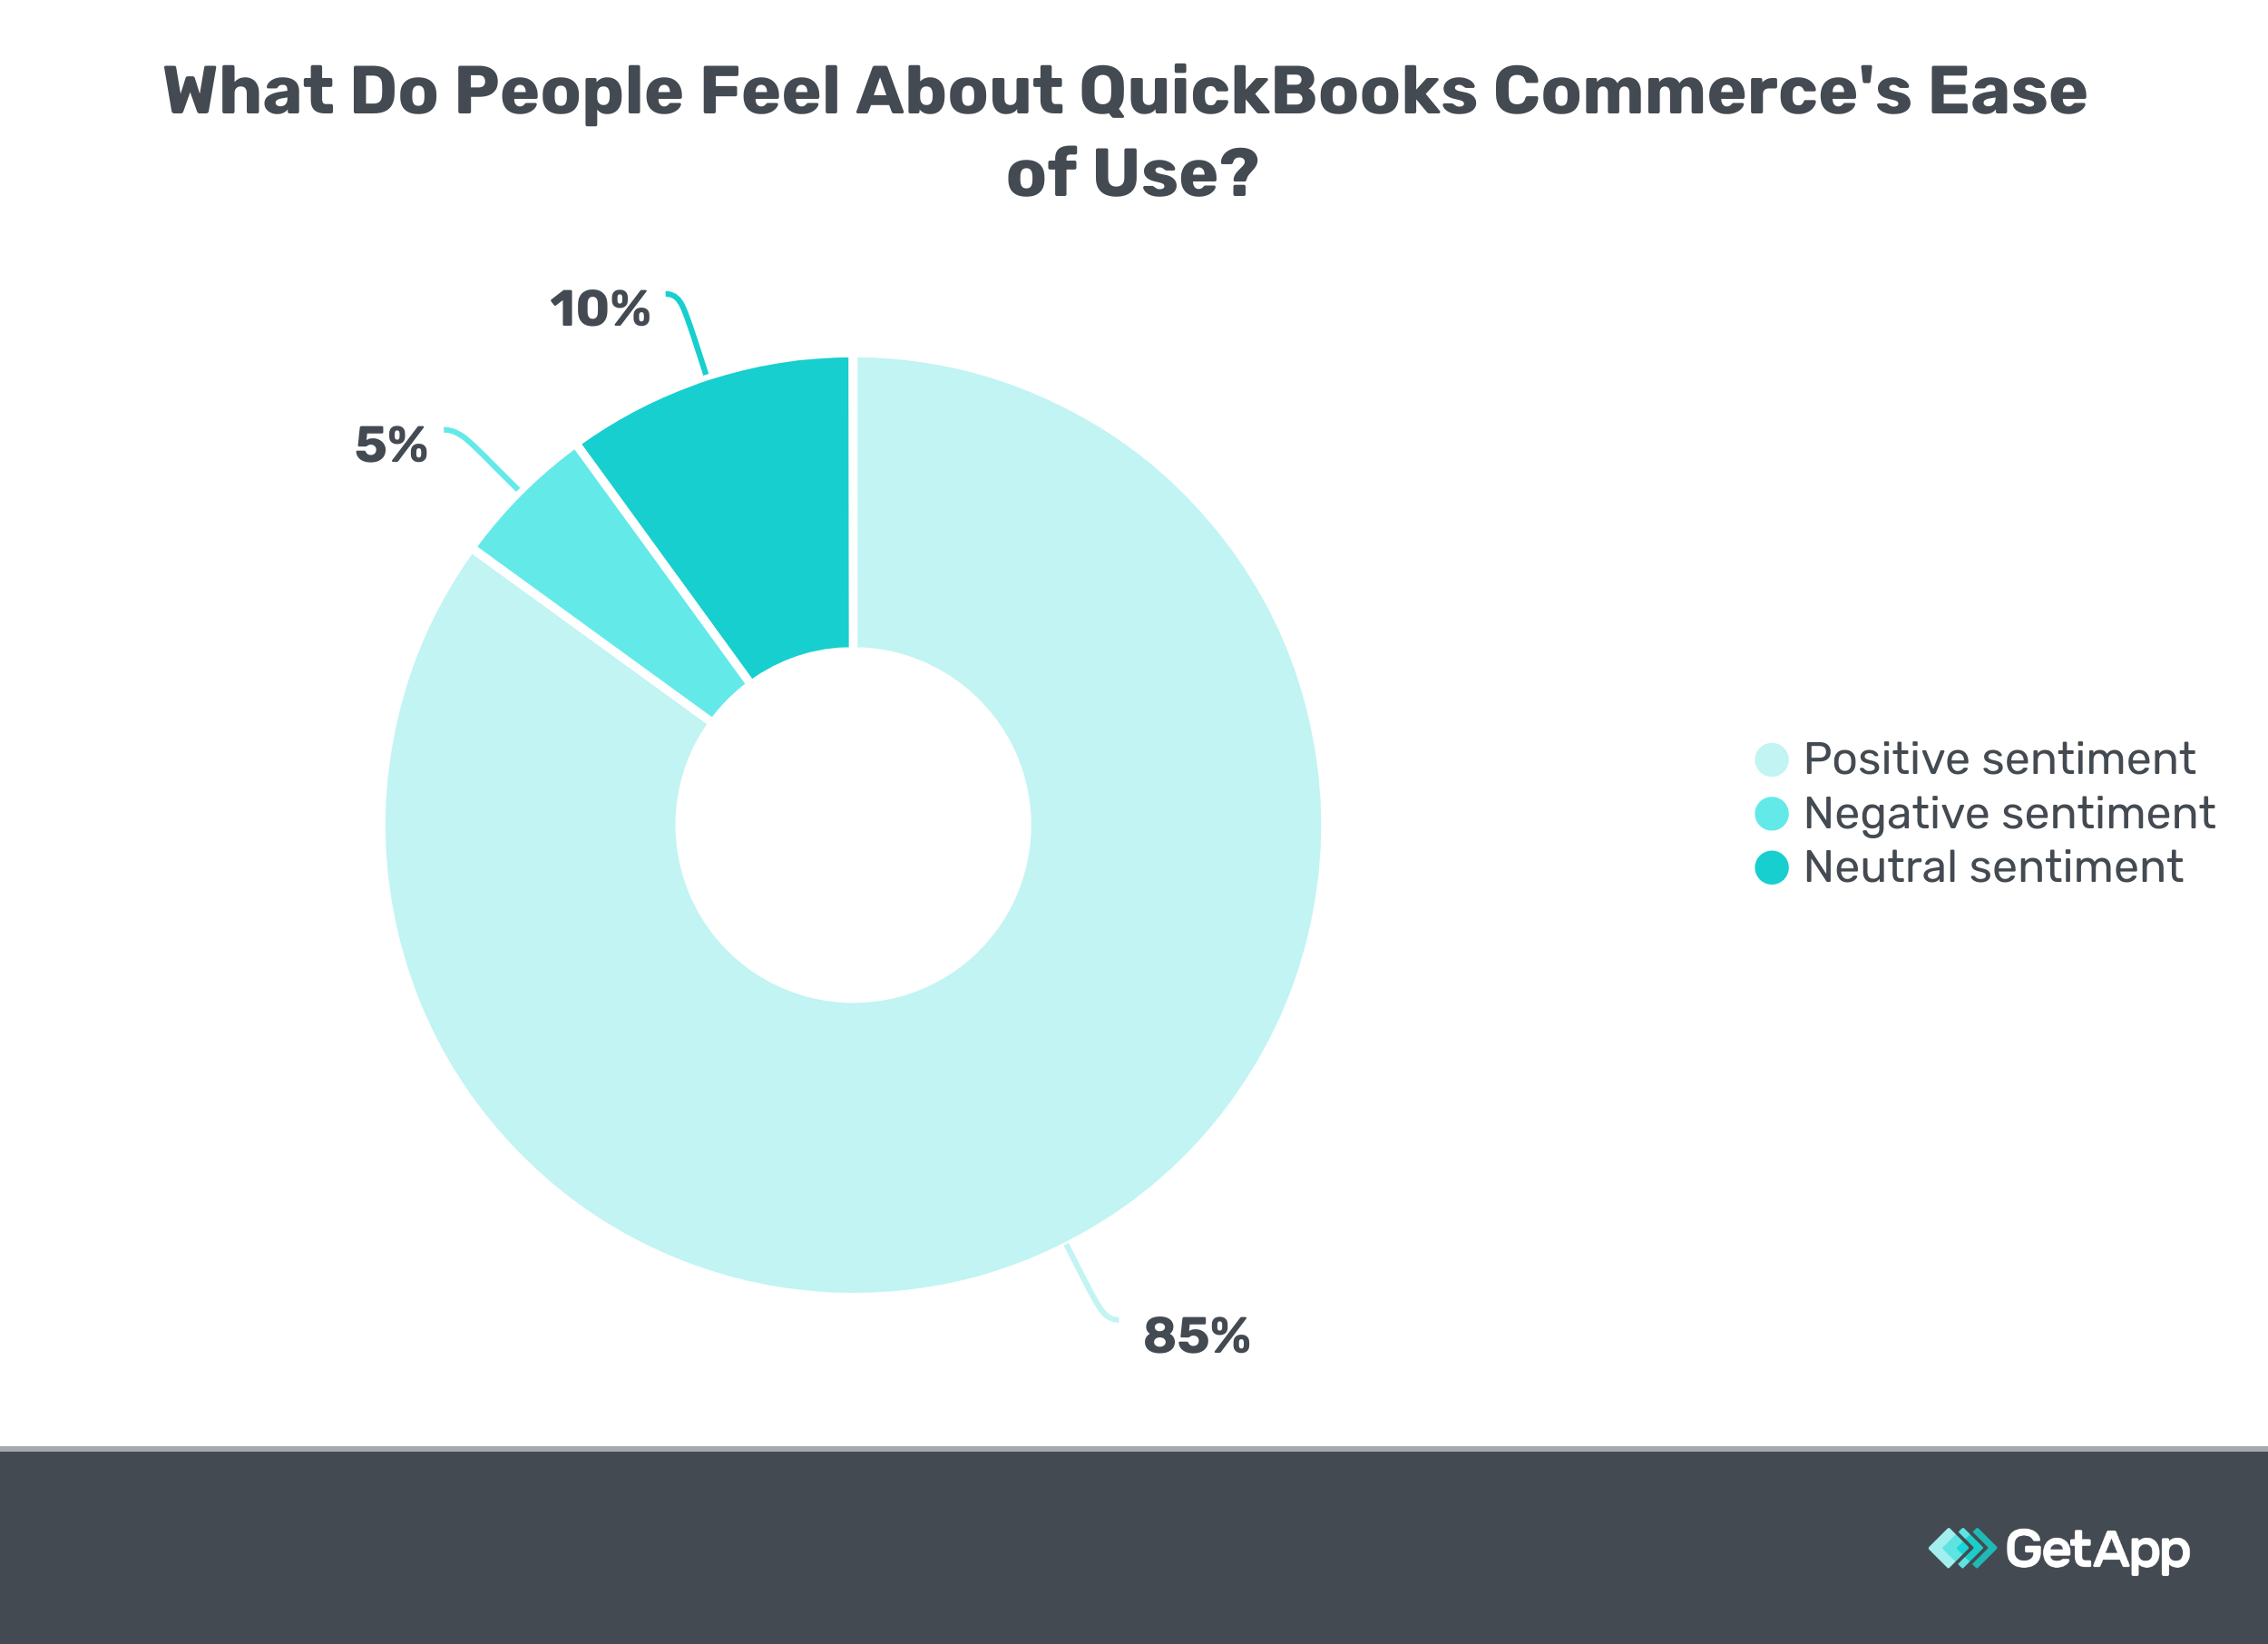 What Do People Feel About QuickBooks Commerce's Ease of Use